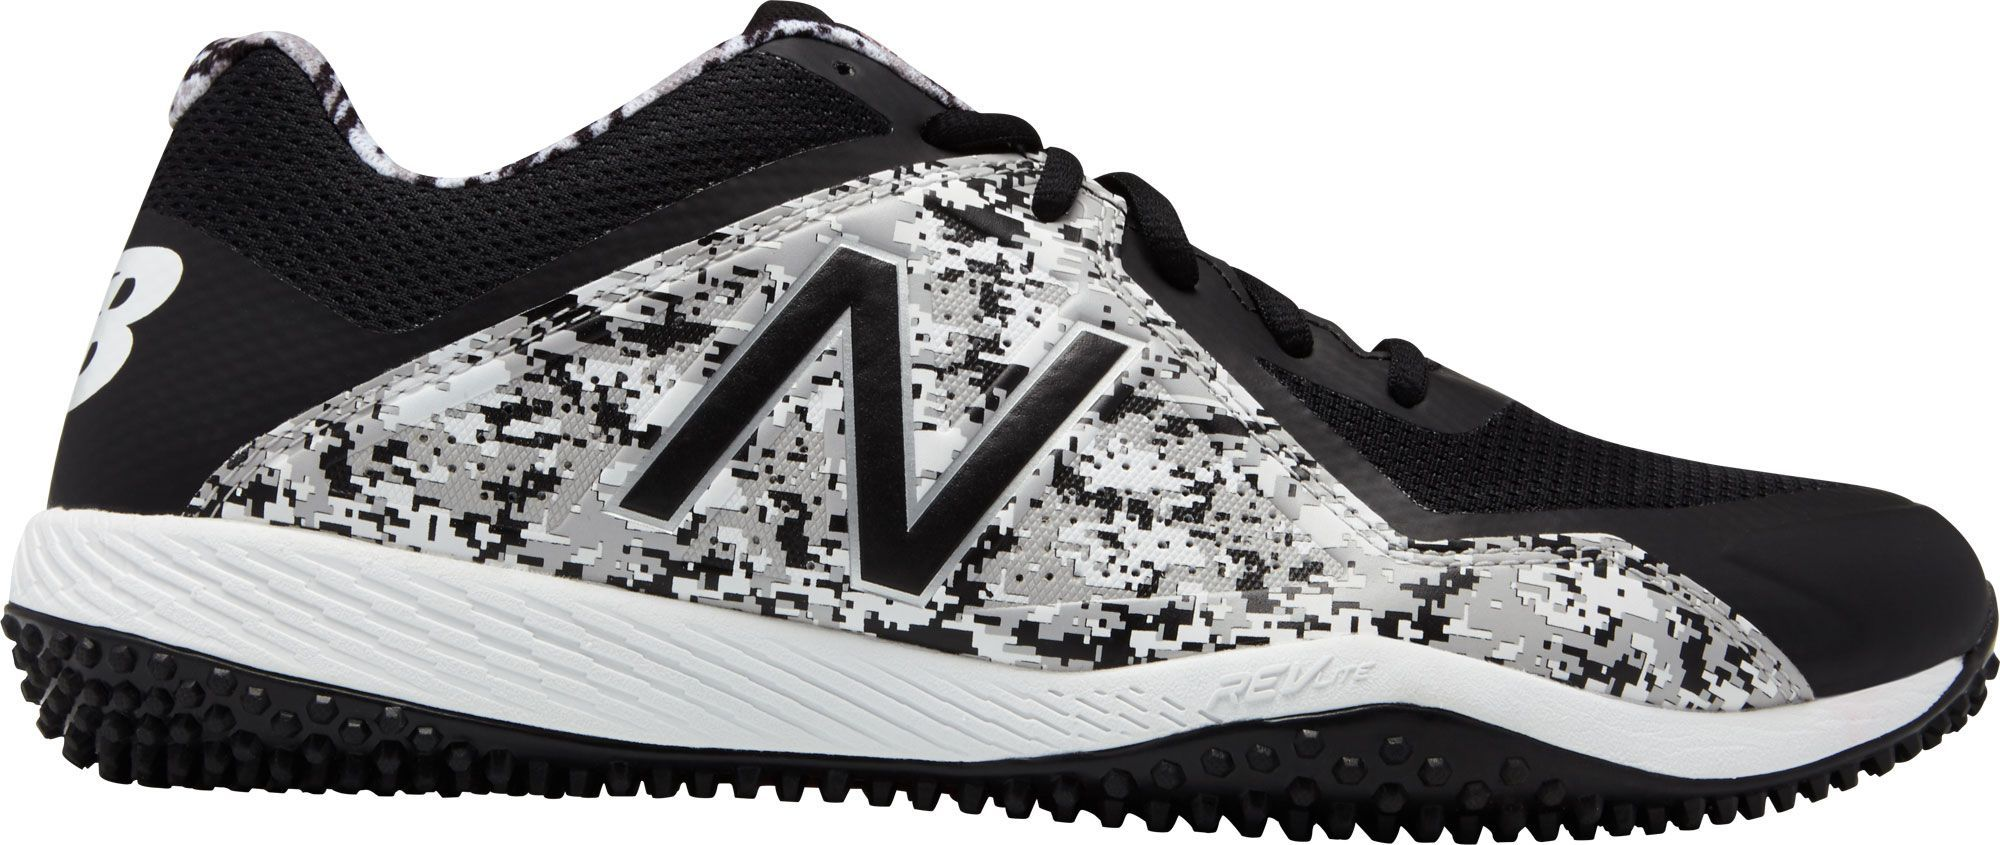 f64009ee14e4d New Balance Men's 4040 V4 Pedroia Turf Baseball Cleats | DICK'S Sporting  GoodsProposition 65 warning iconProposition 65 warning icon